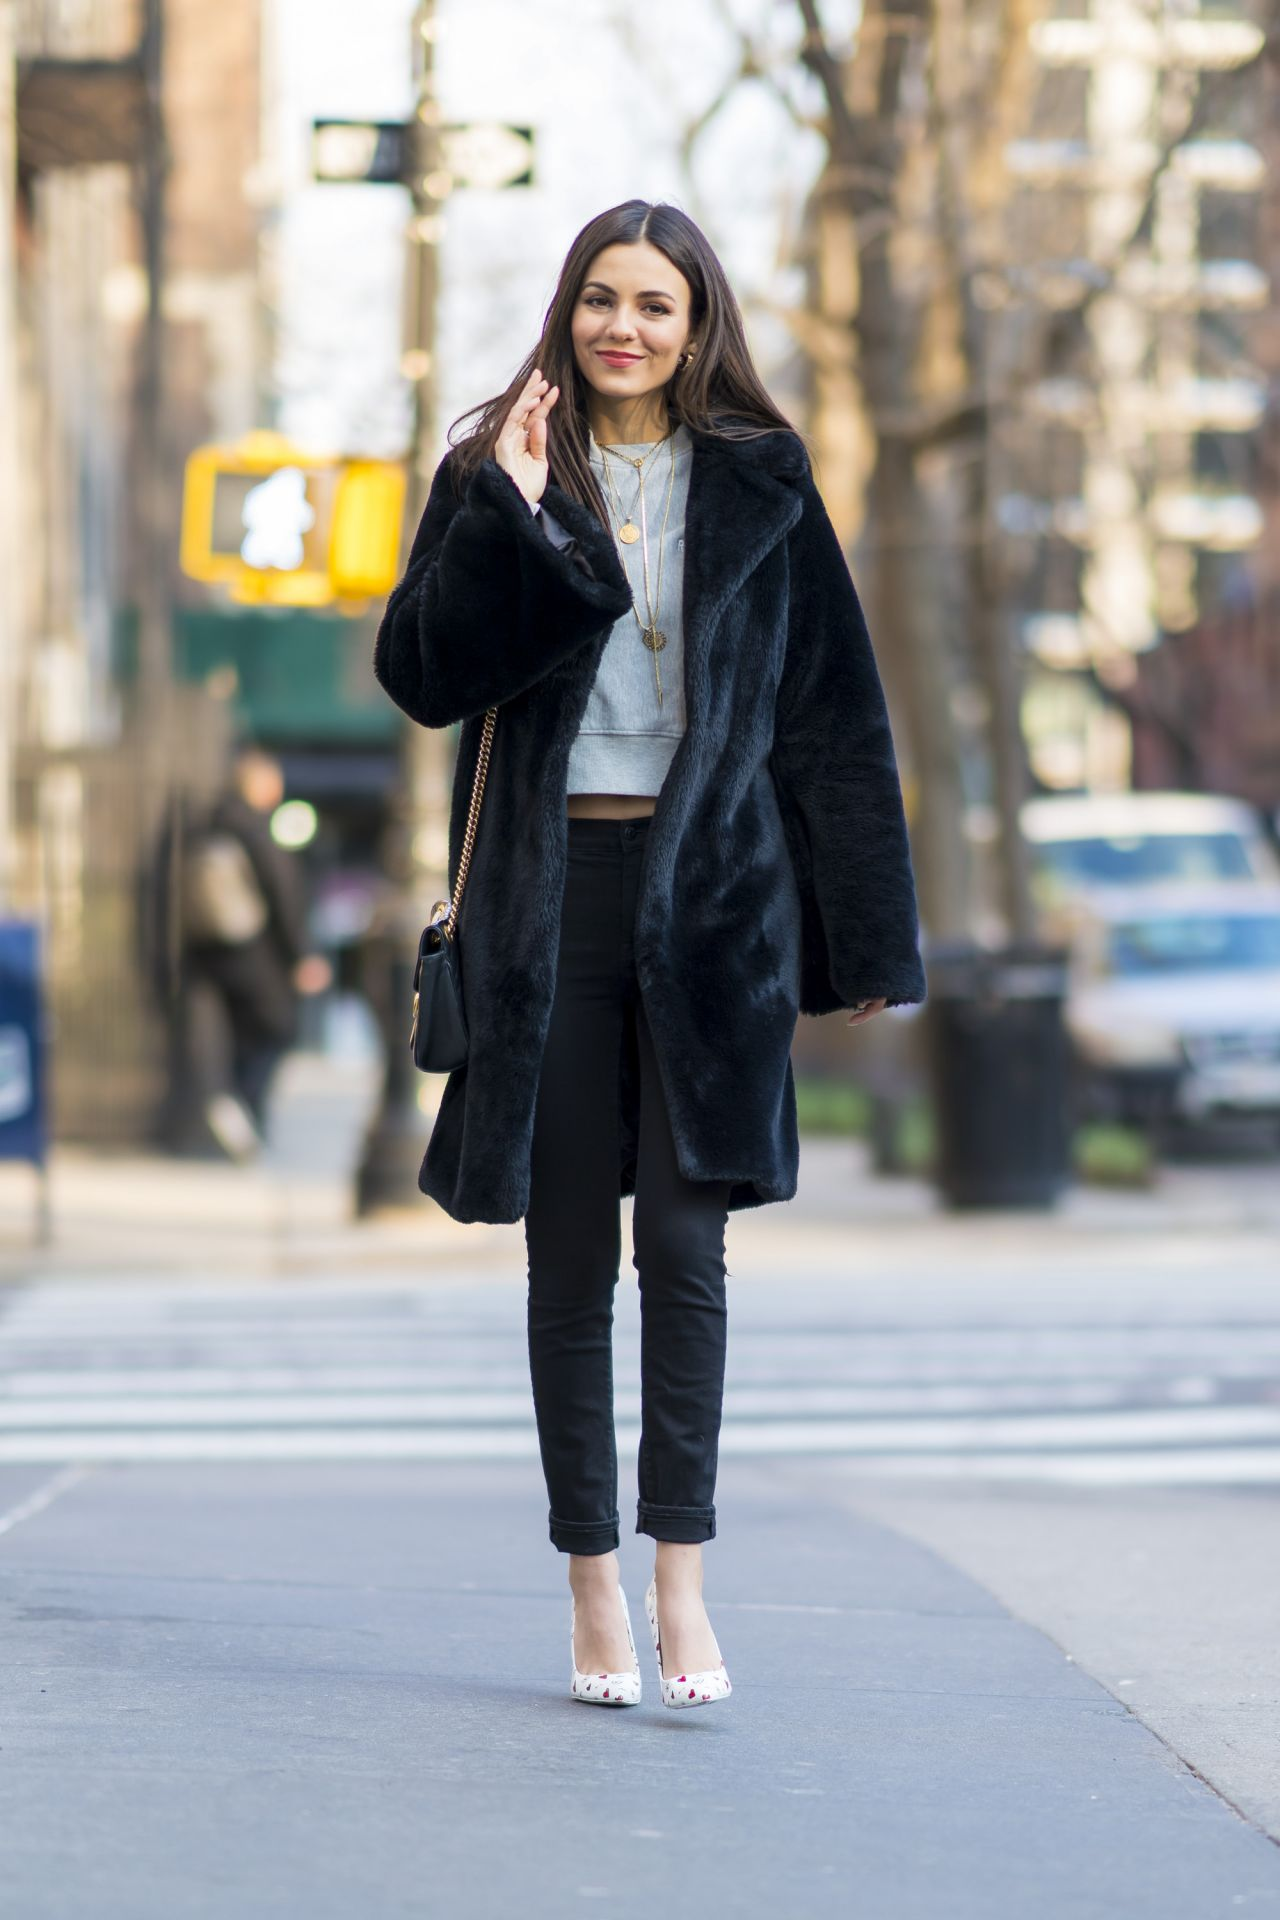 Victoria Justice Out In New York City March 2018